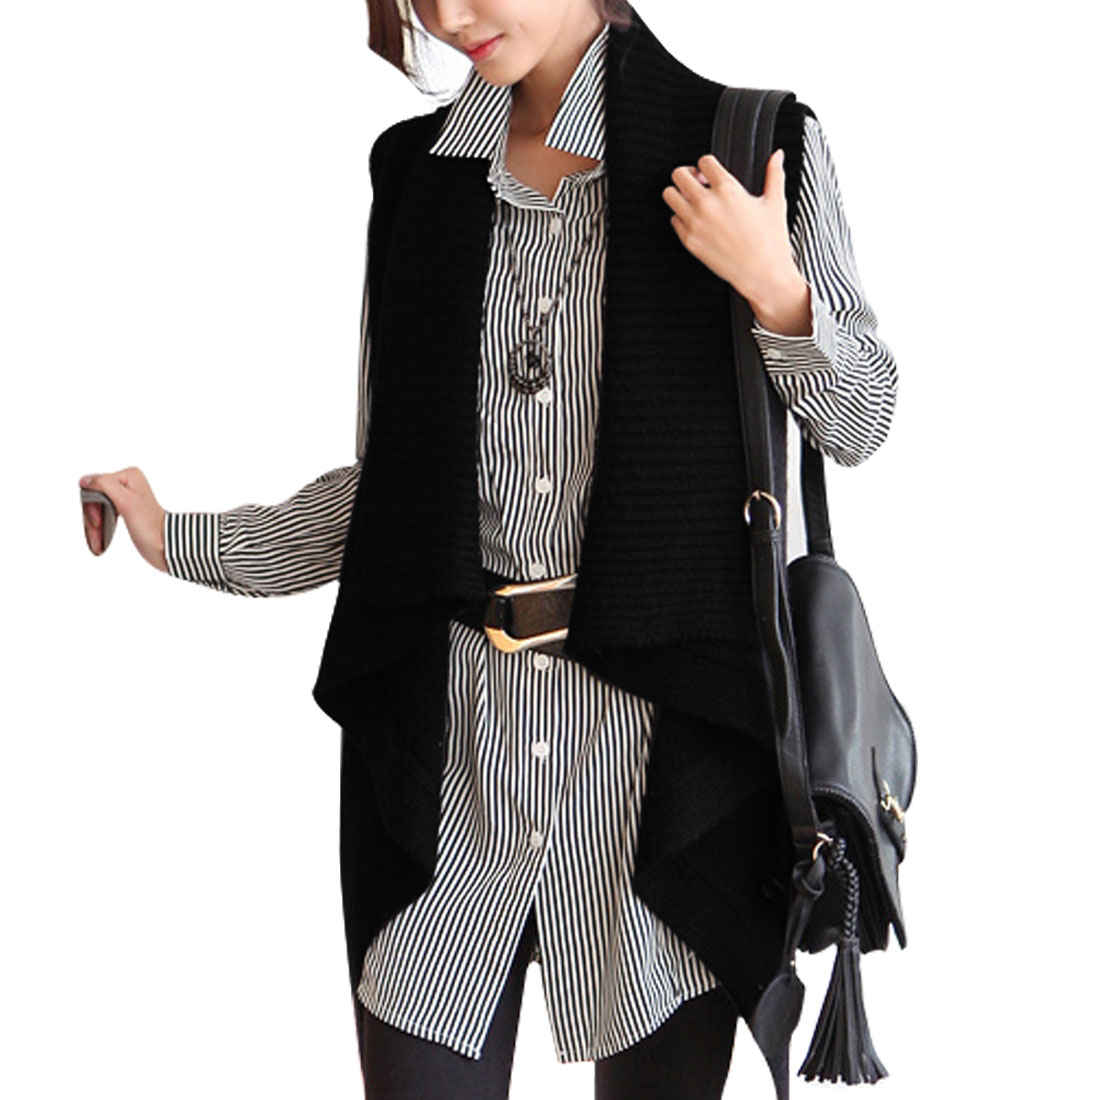 XL Ladies Black Button Down Solid Color Round Hem Style Cardigan Sweater